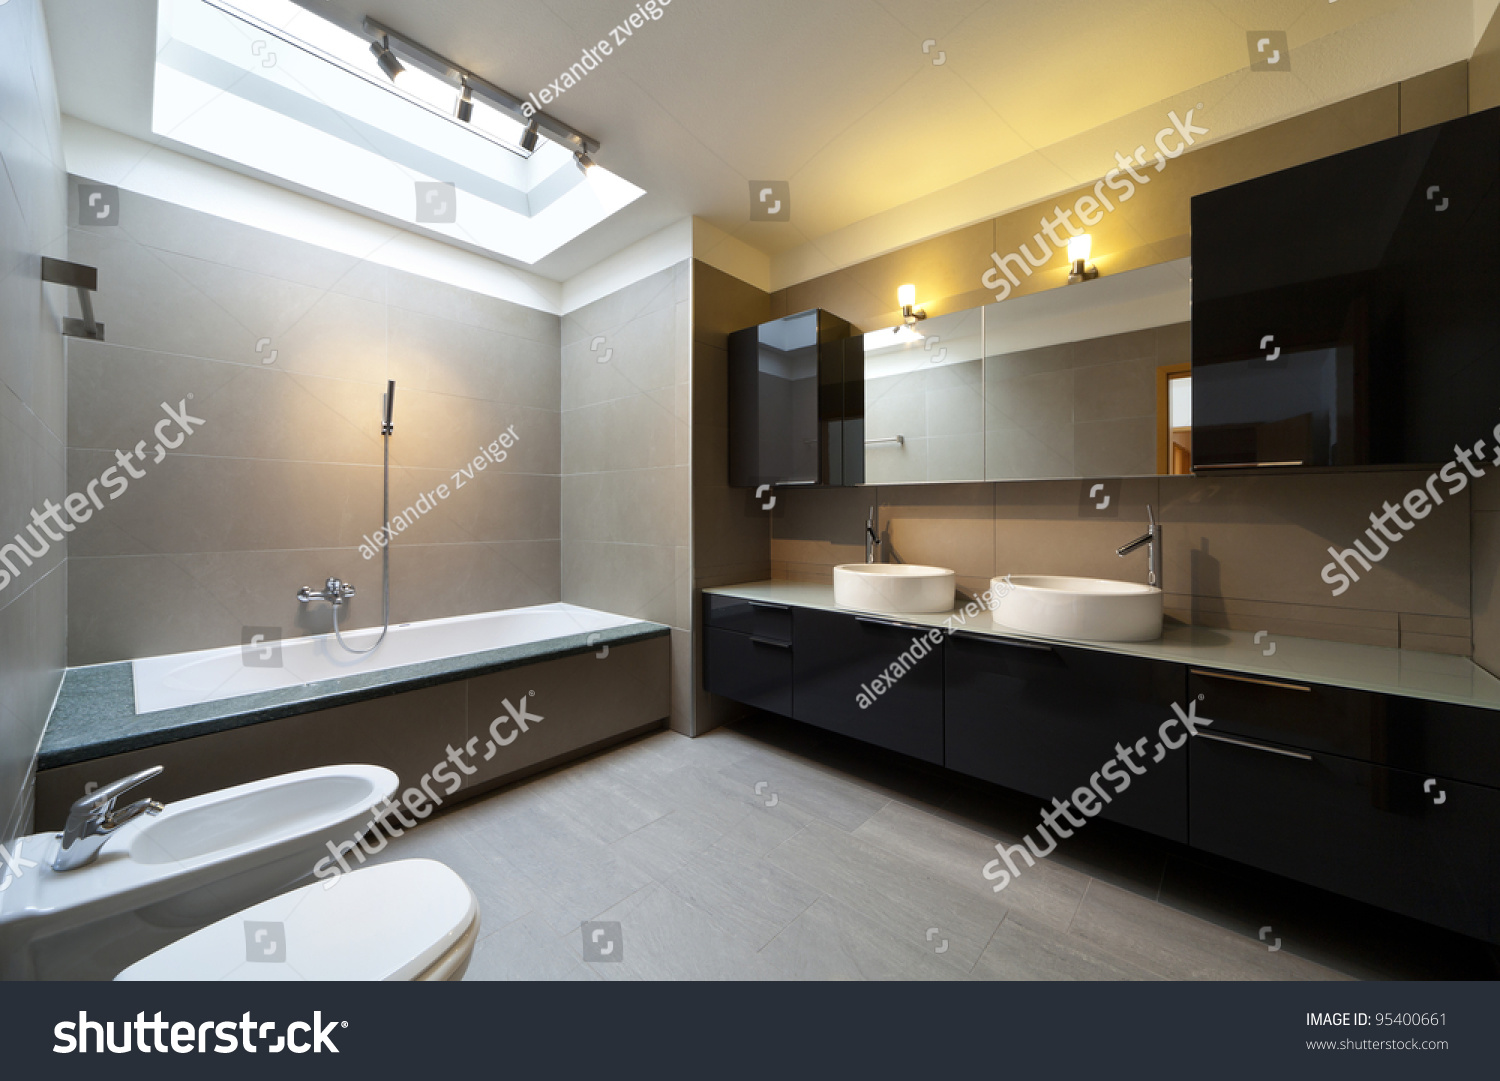 Beautiful apartment bathrooms - Beautiful Apartment Interior Bathroom